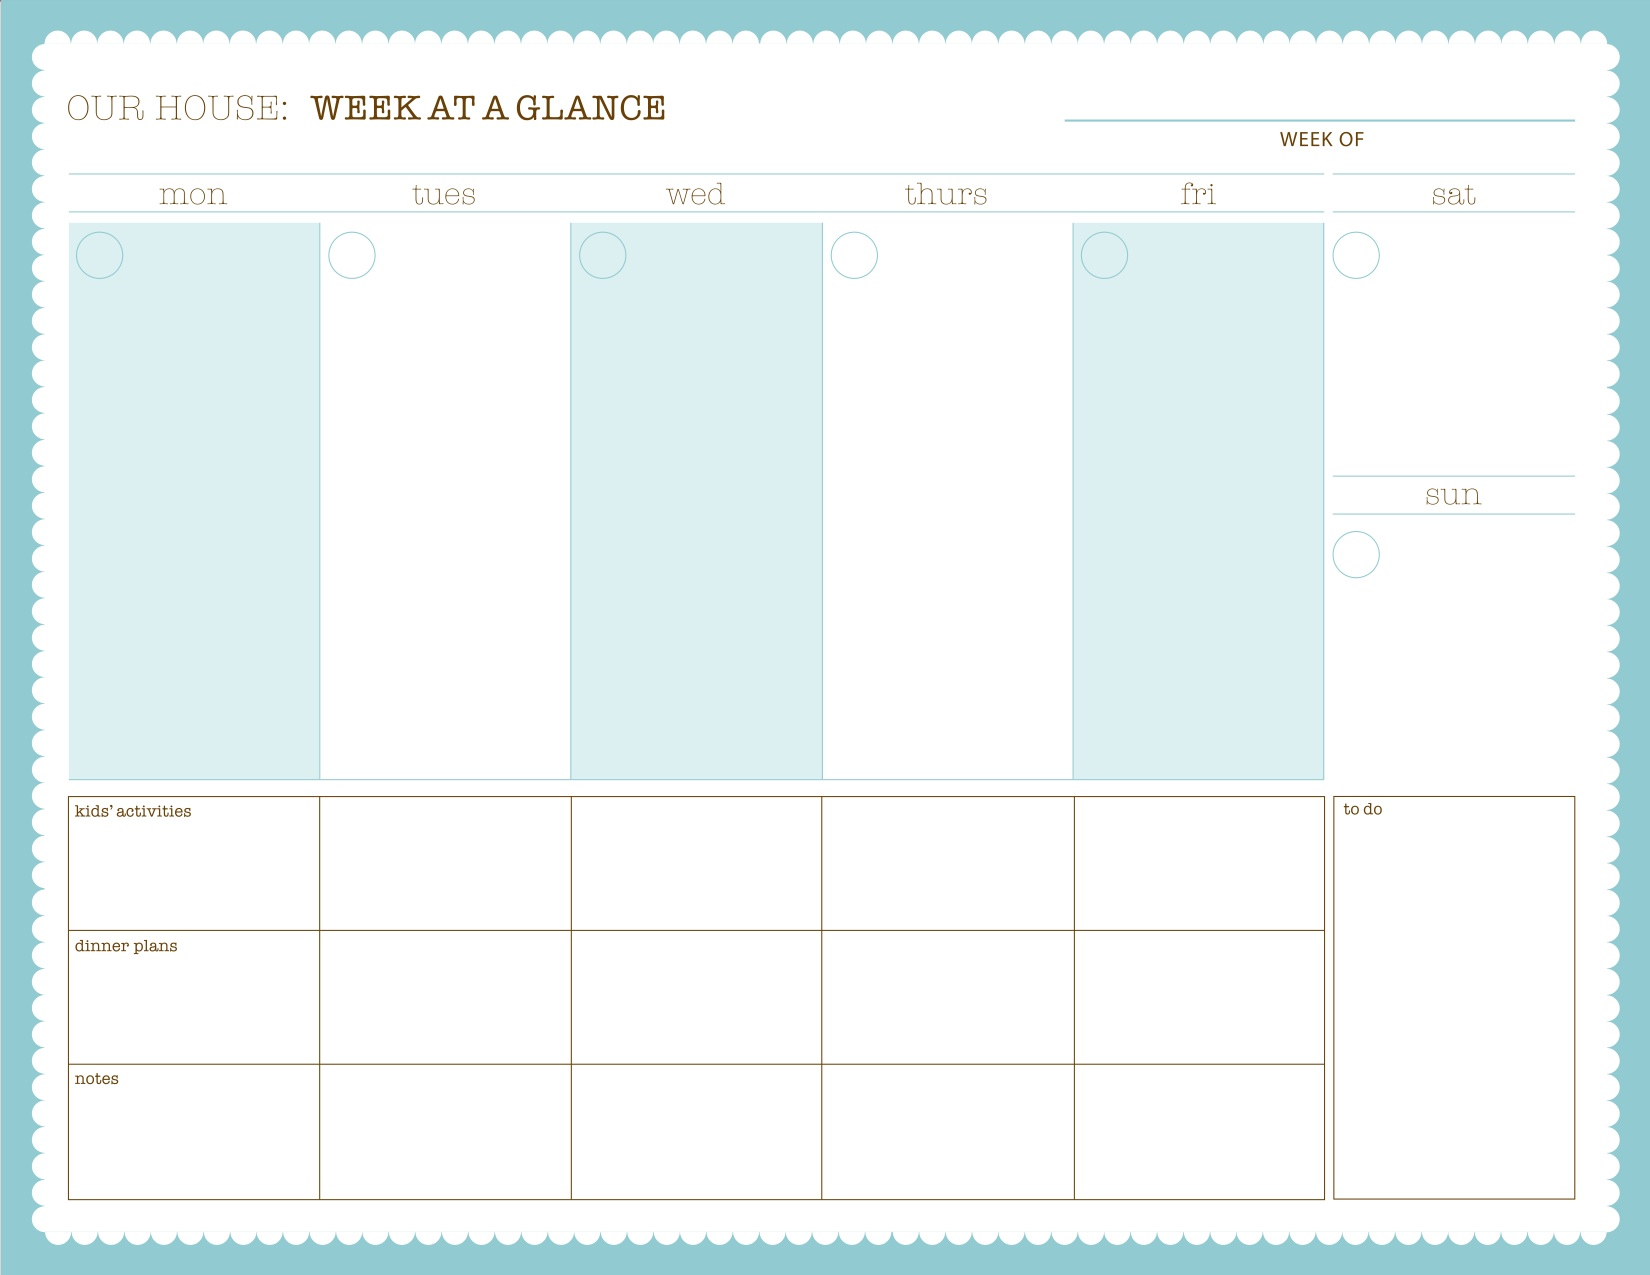 2016 Week At A Glance Printable Calendar | Search Results | 2016 ...